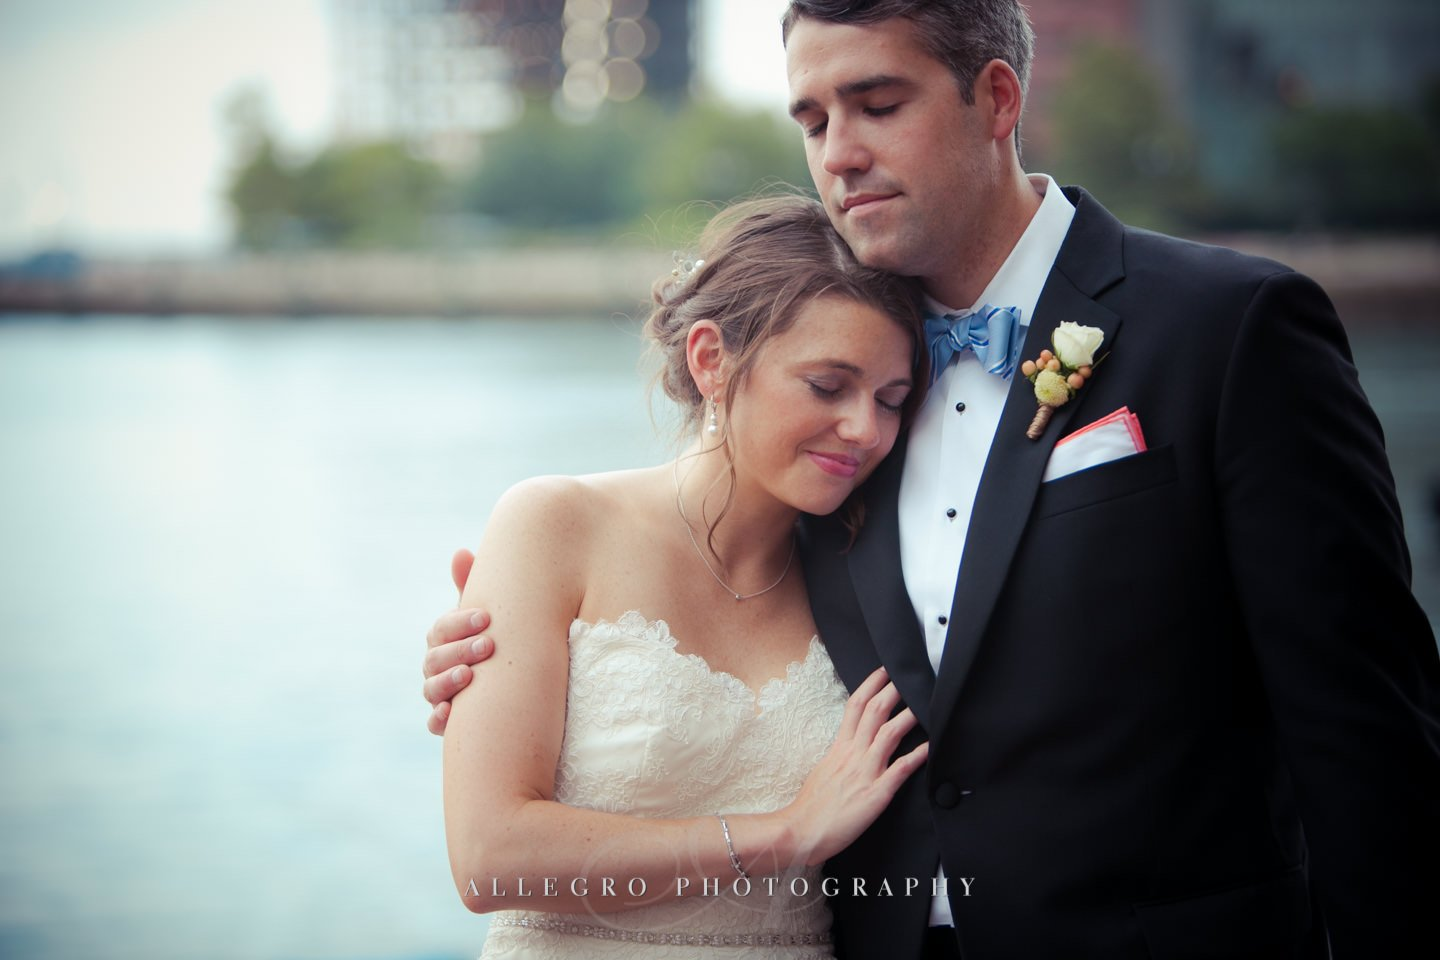 by the water boston photo by Allegro Photography